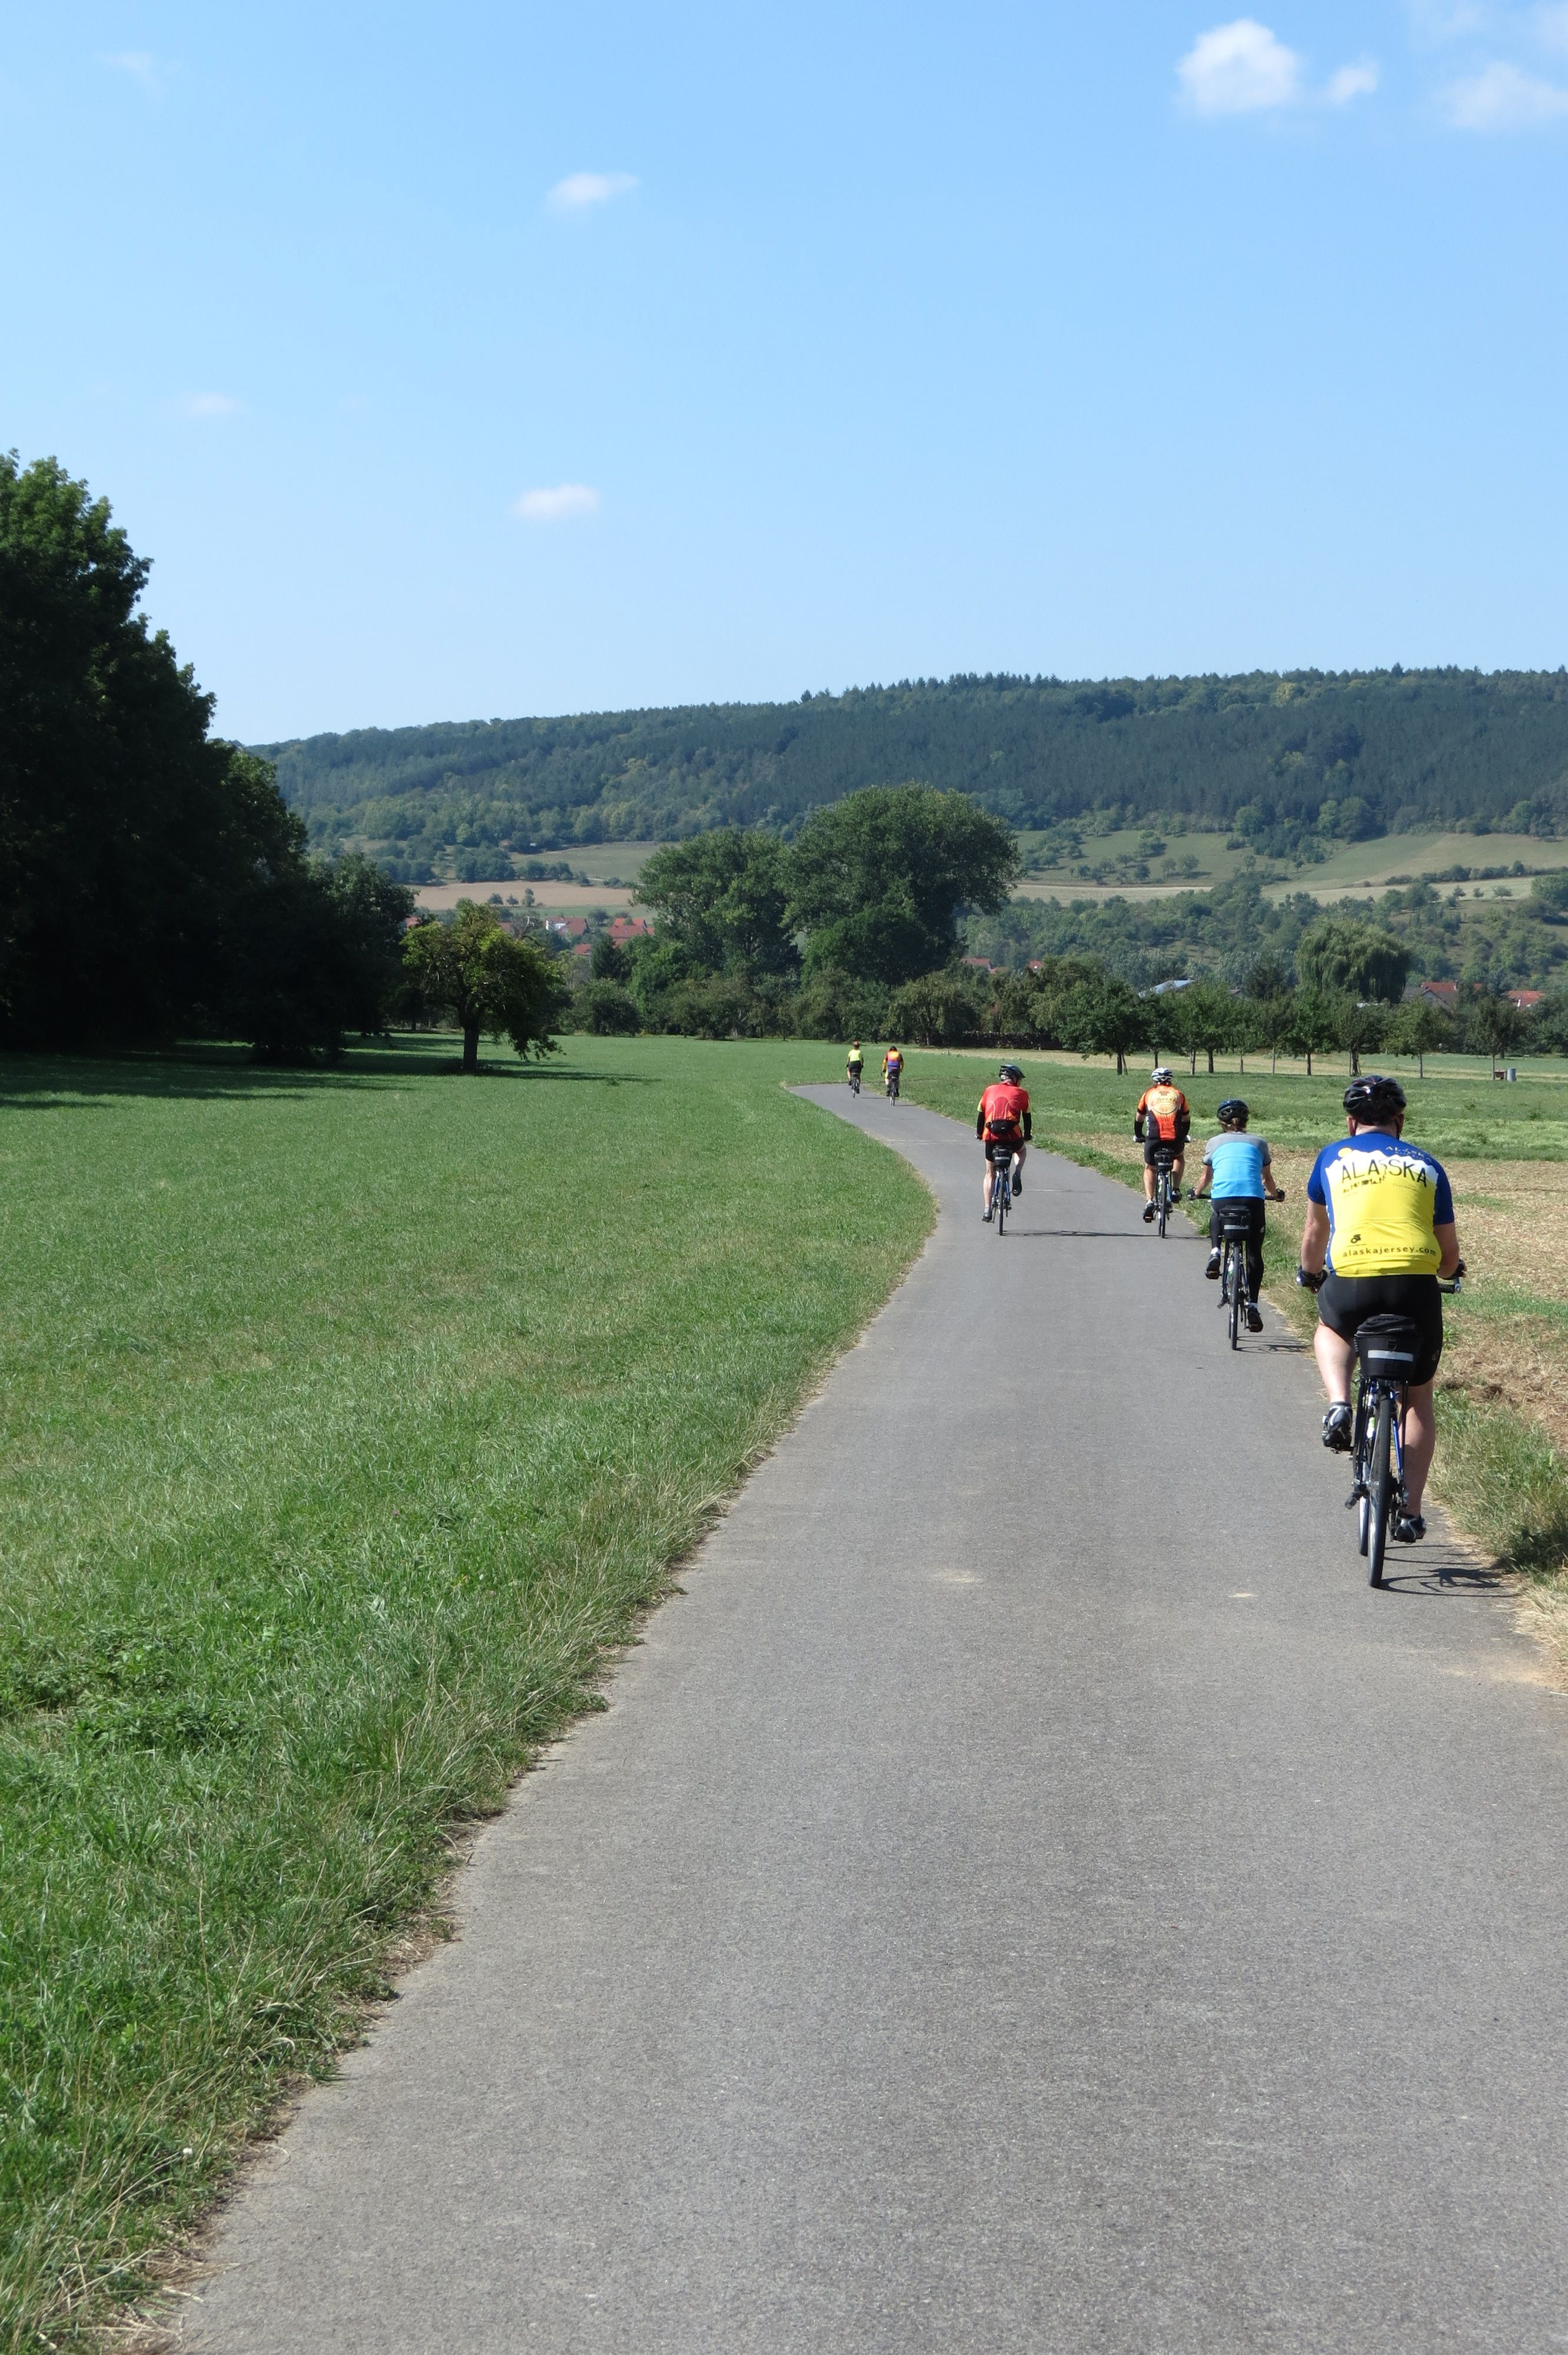 Some shots from staff and guests during a 2012 bicycle tour of Germany.